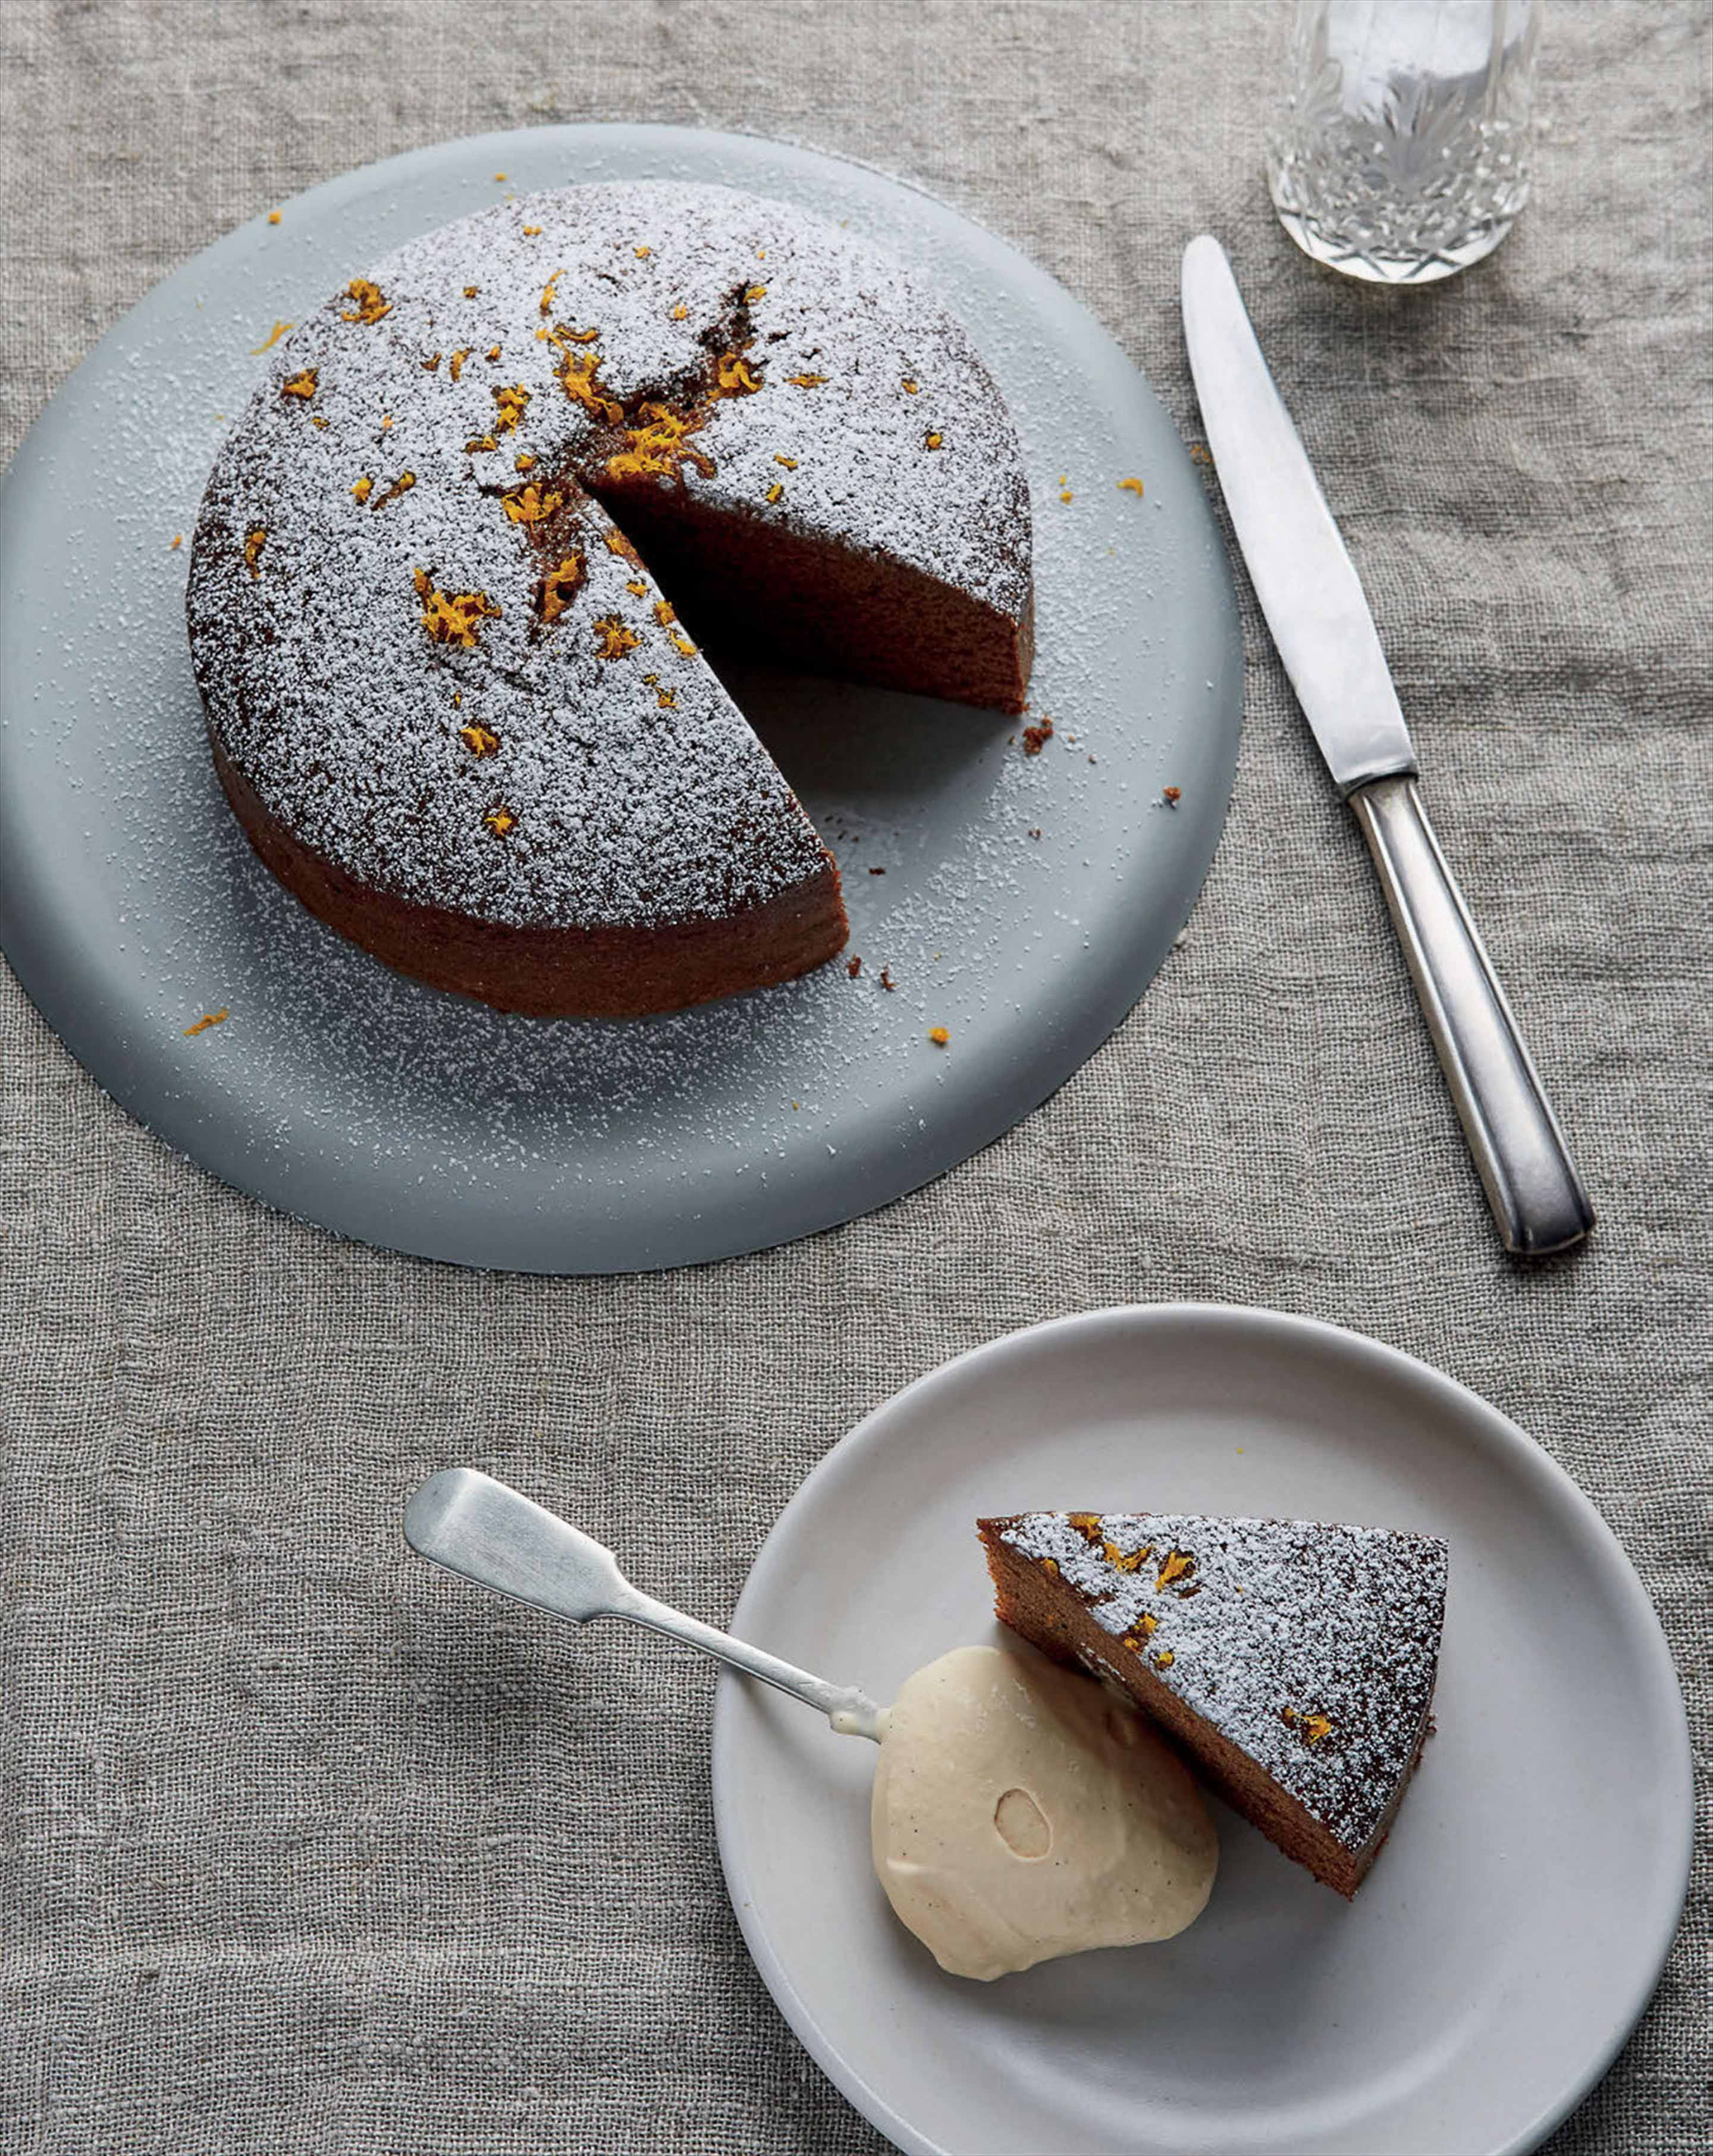 Jamaican ginger cake with caramelised white chocolate ice cream